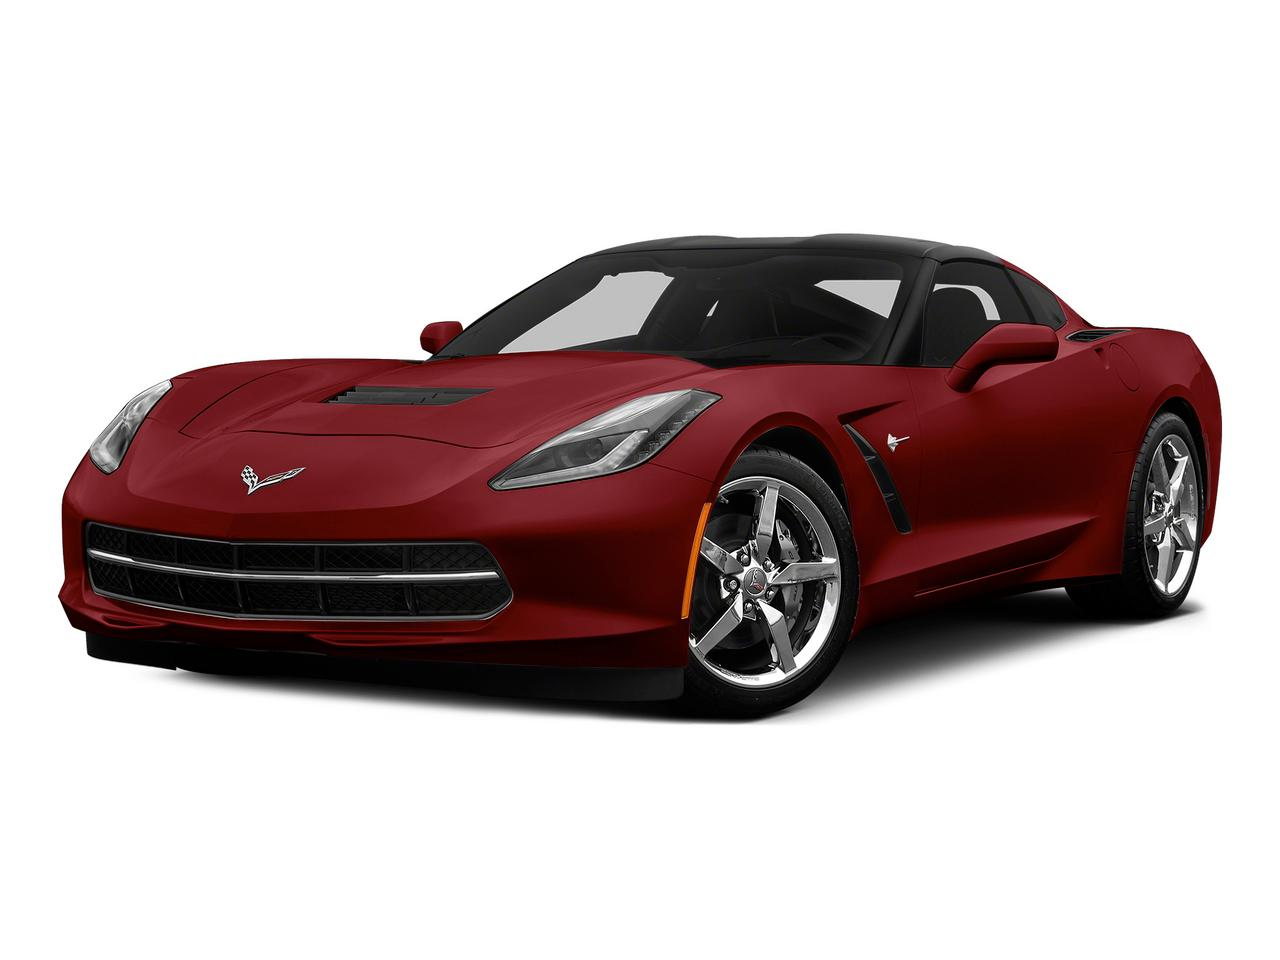 2015 Chevrolet Corvette Vehicle Photo in Smyrna, GA 30080